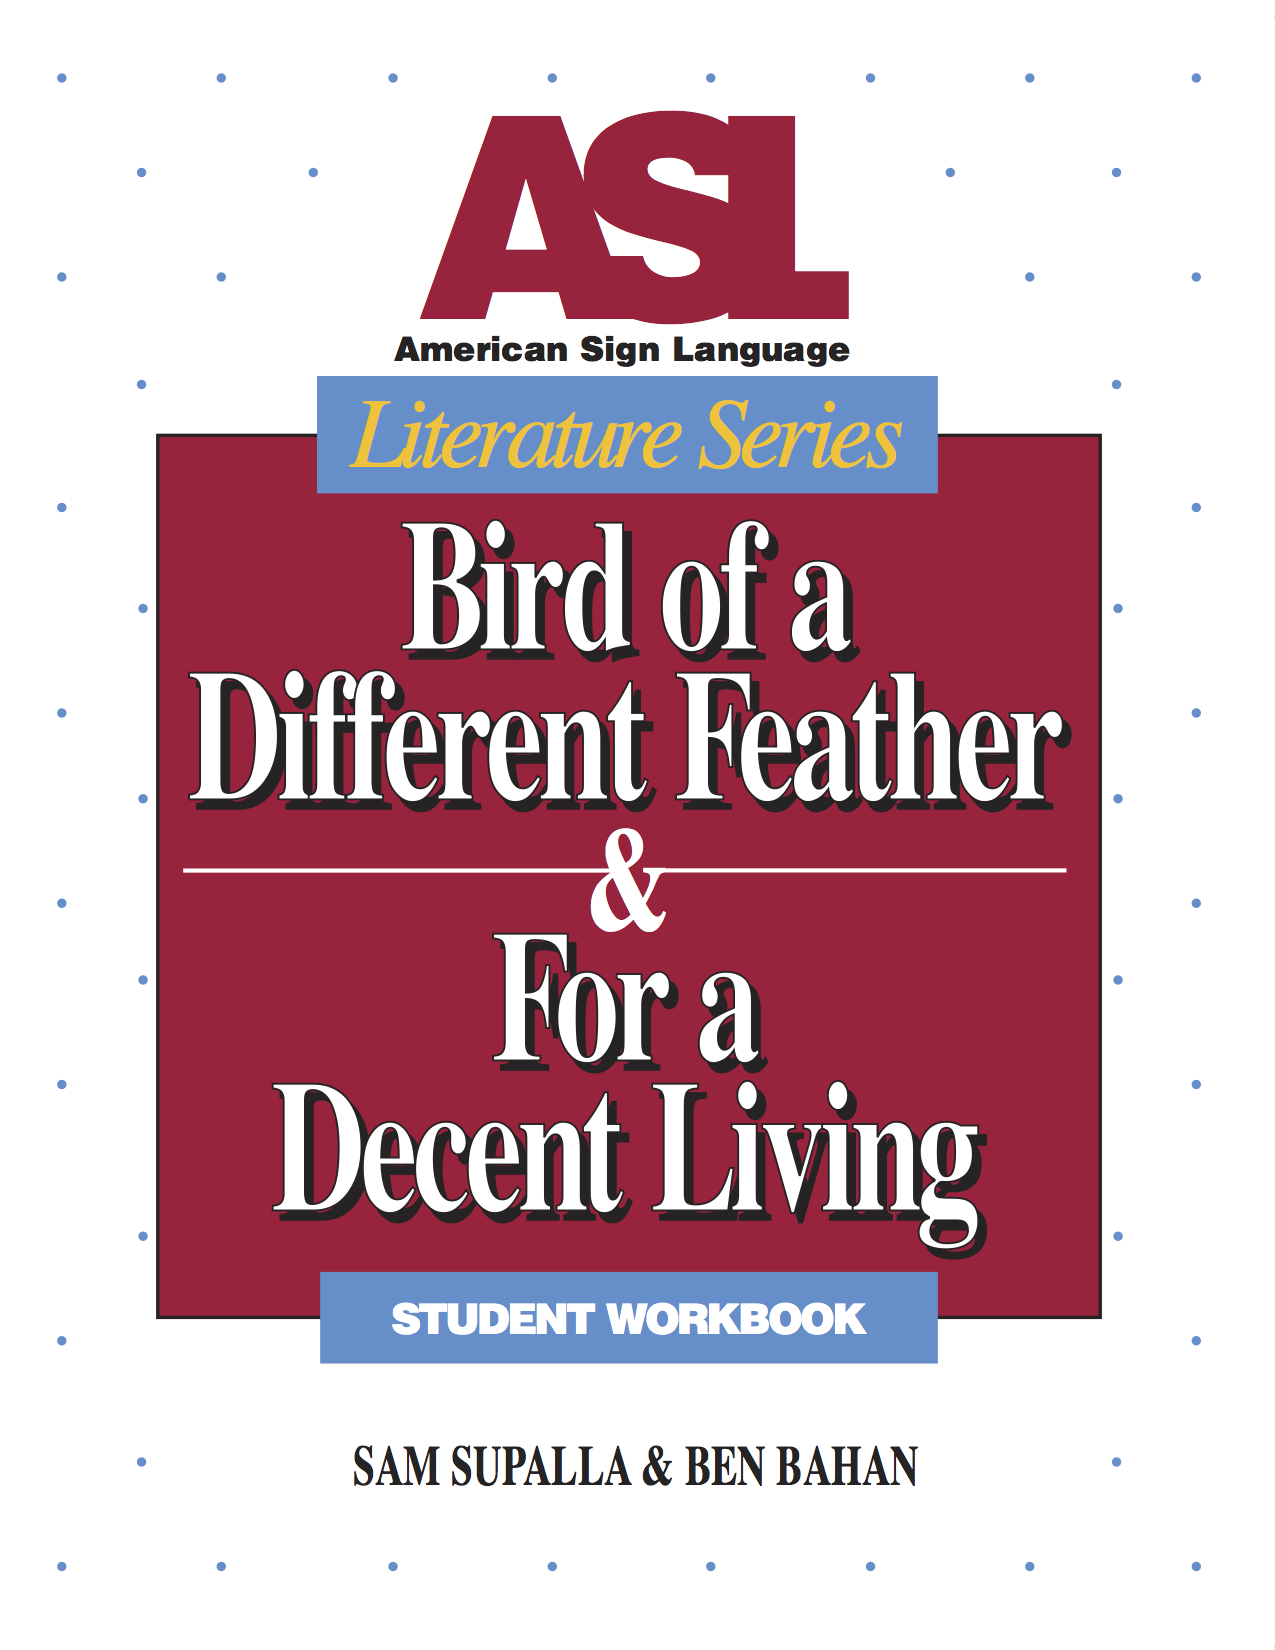 ASL Literature Series